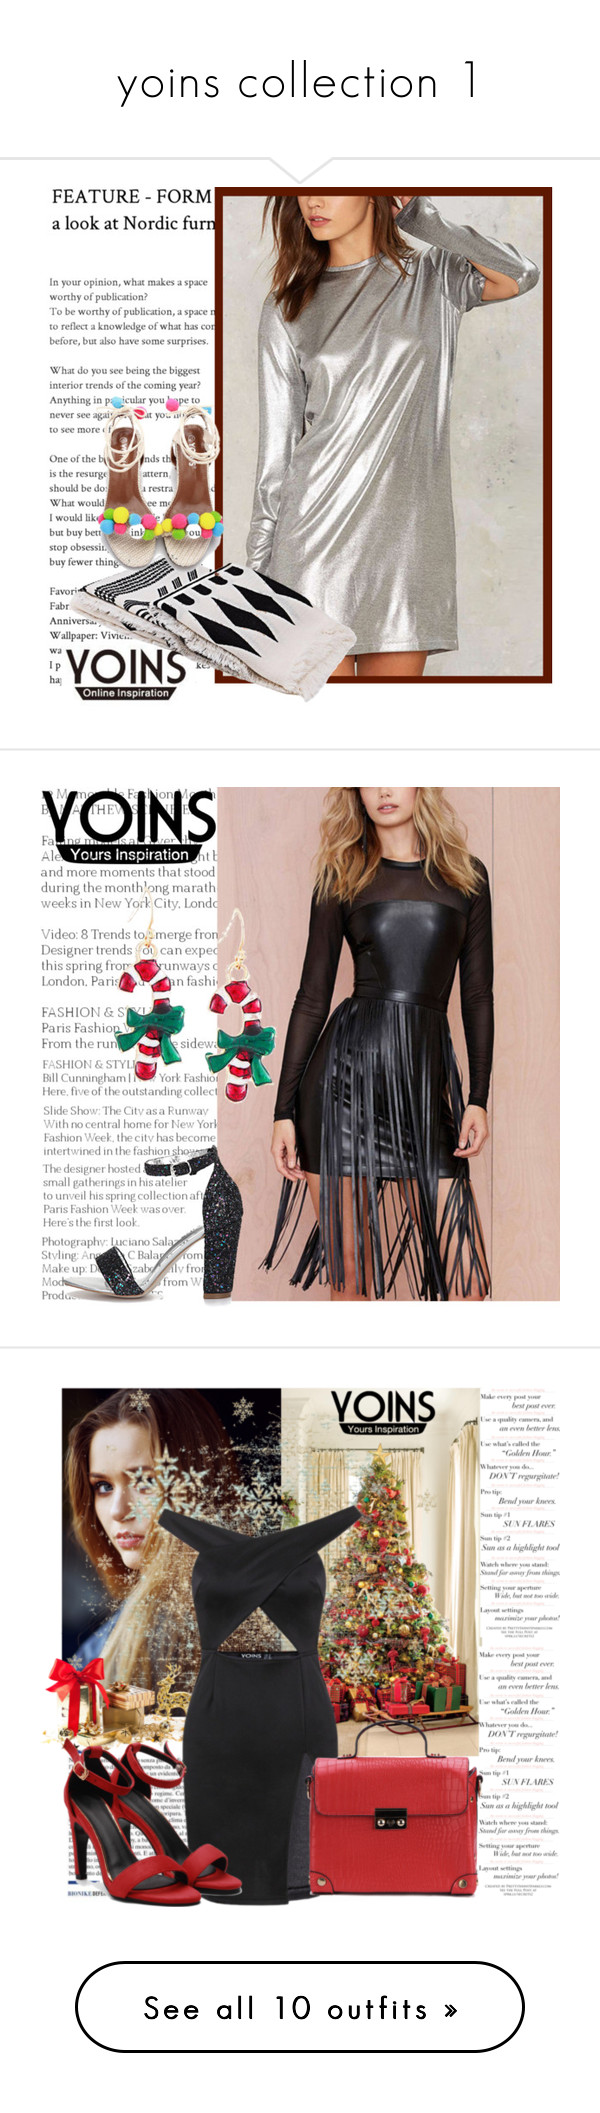 """yoins collection 1"" by merima-k ❤ liked on Polyvore featuring yoins, yoinscollection, loveyoins, Toni&Guy, Oris, Paige Denim, Misha Nonoo, Walking Cradles and Nika"